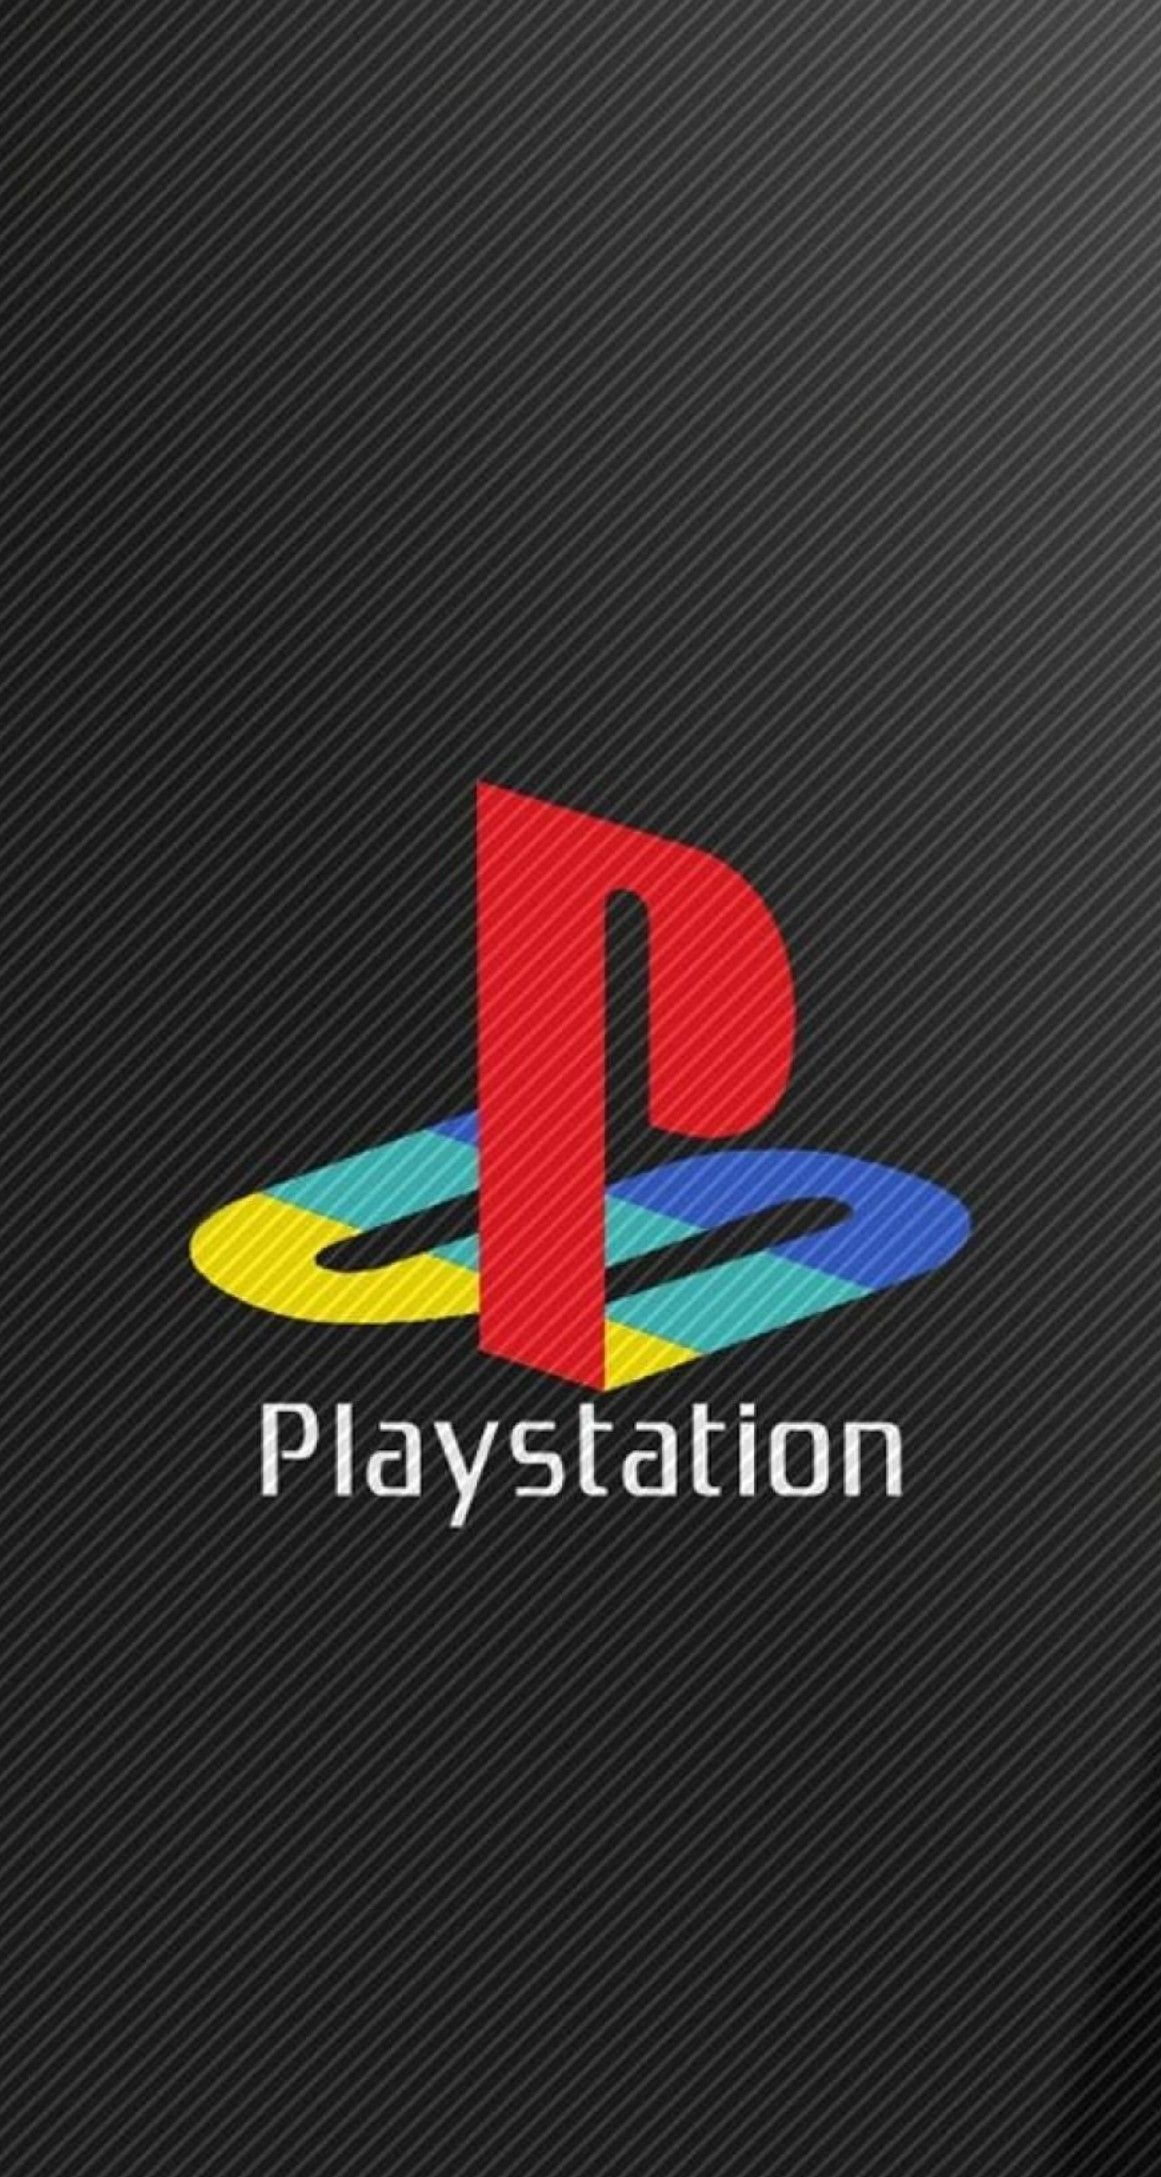 Tattoo Symbols and What They Mean Playstation